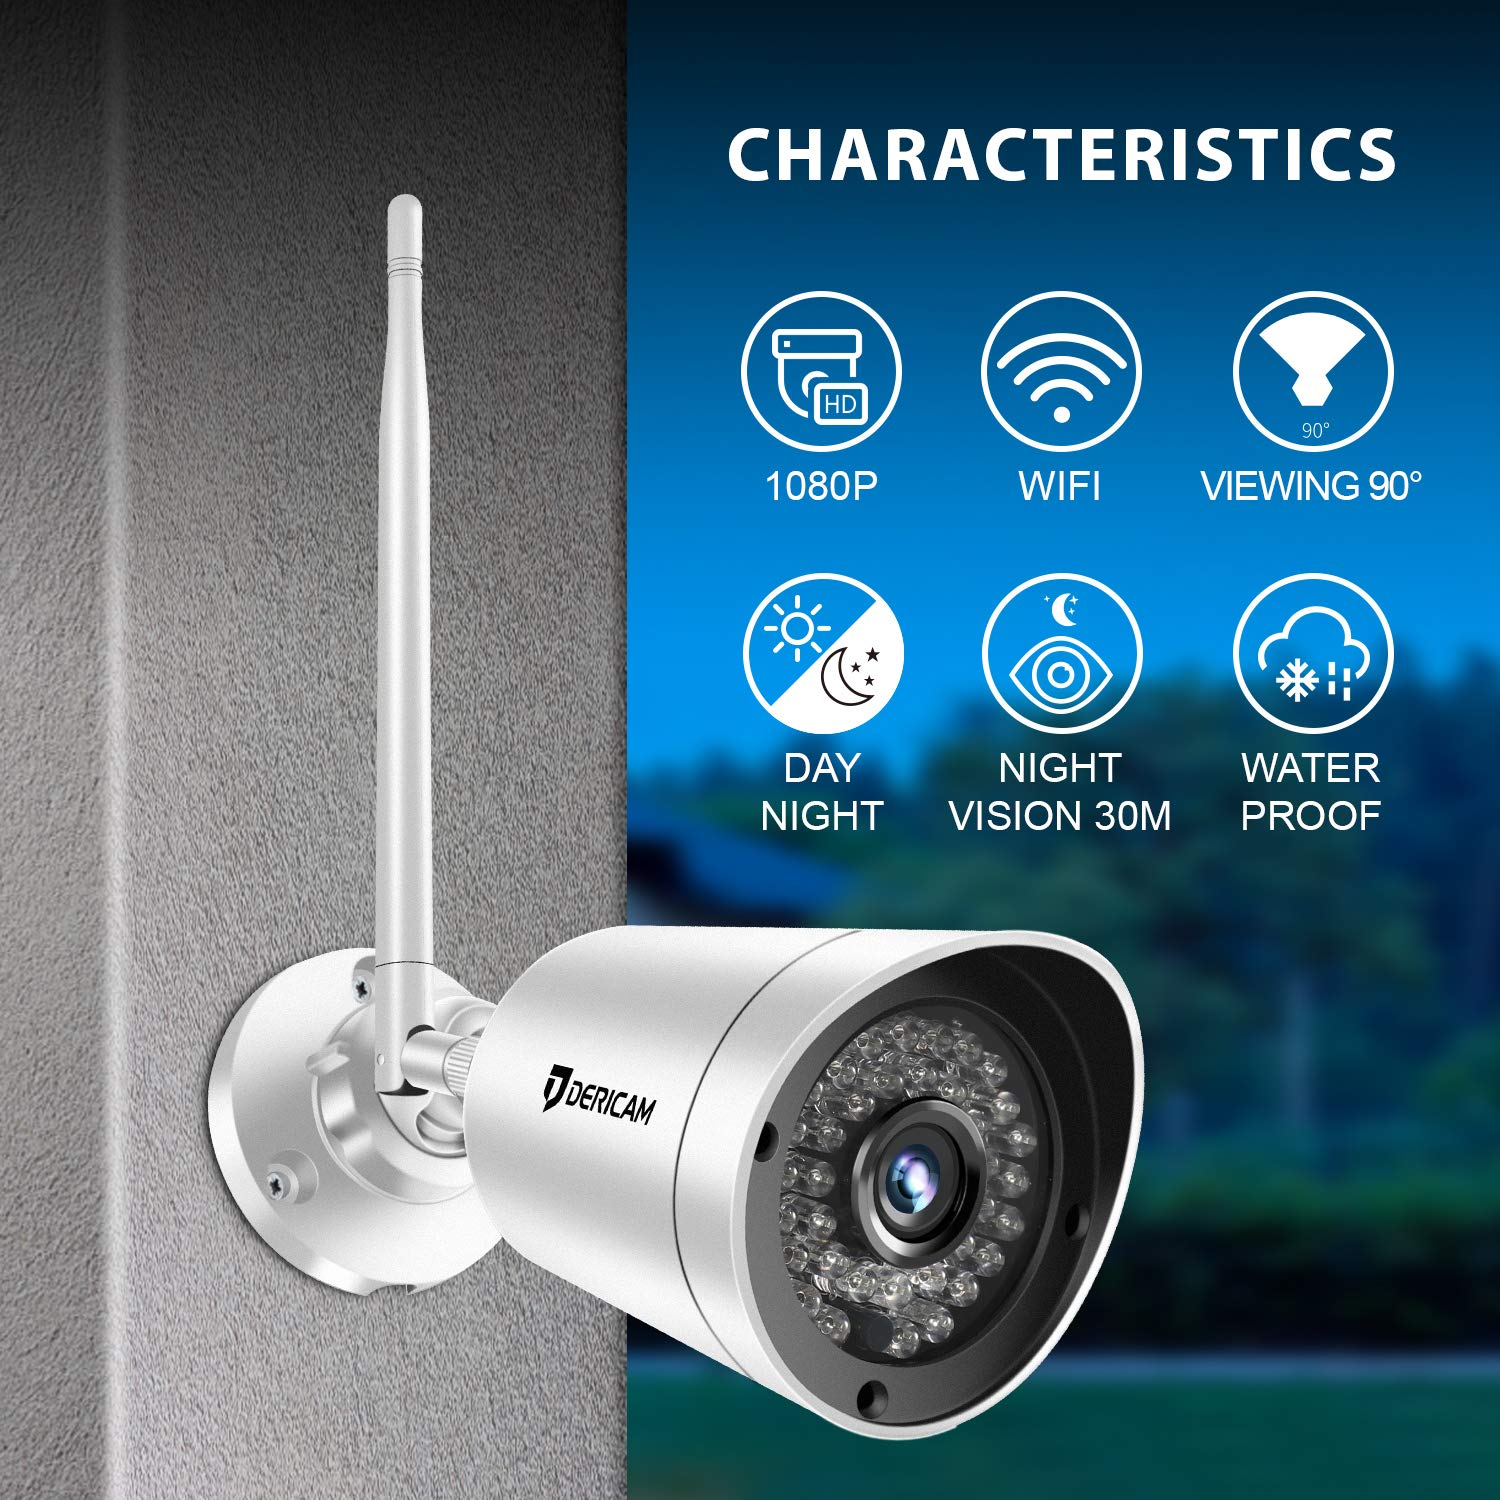 Dericam Wireless Outdoor Security Camera 1080P 30fps Full HD Wi-Fi Bullet Camera, with Powerful 4db Enhanced Wi-Fi Antenna, External SD Card Slot Available and Up to 128GB, 1080-B2A, White